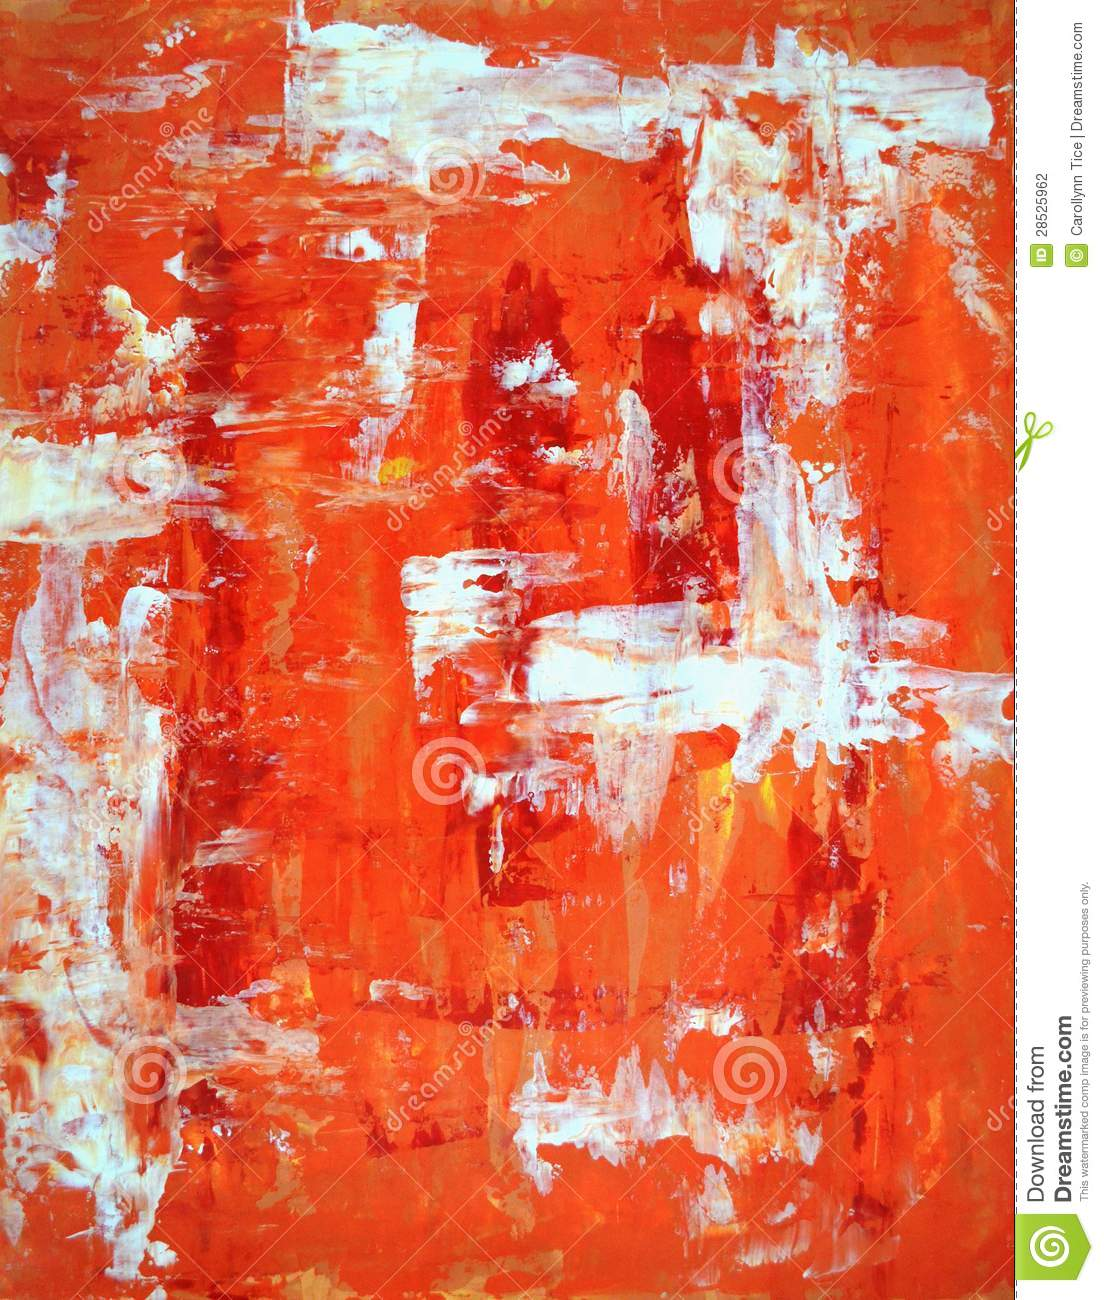 Red And Orange Painting Red And Orange Abstract Art Painting Stock Photography  Image .